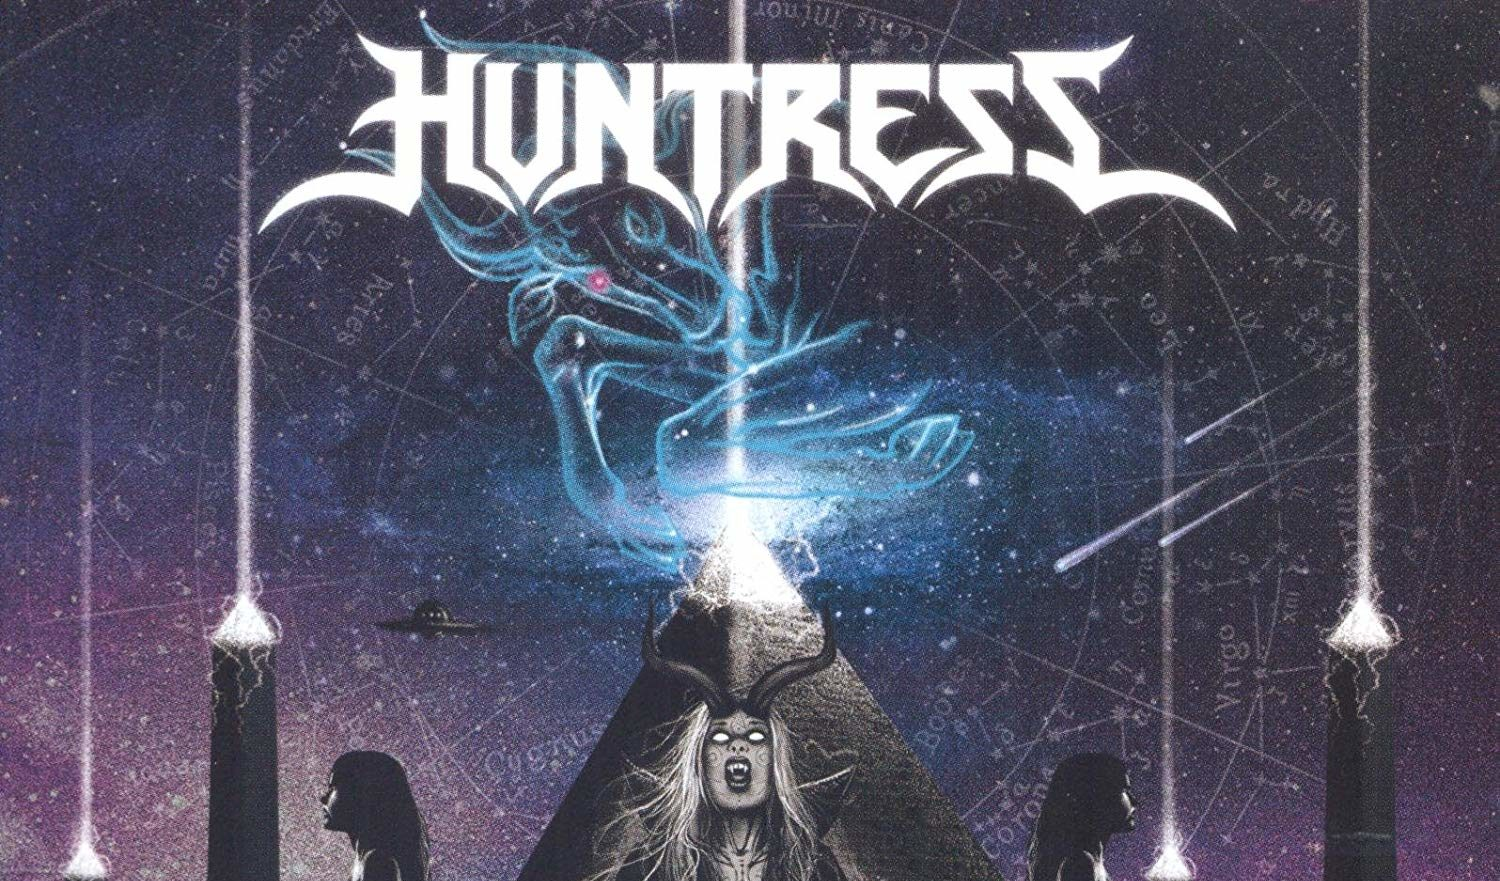 HUNTRESS – Starbound Beast